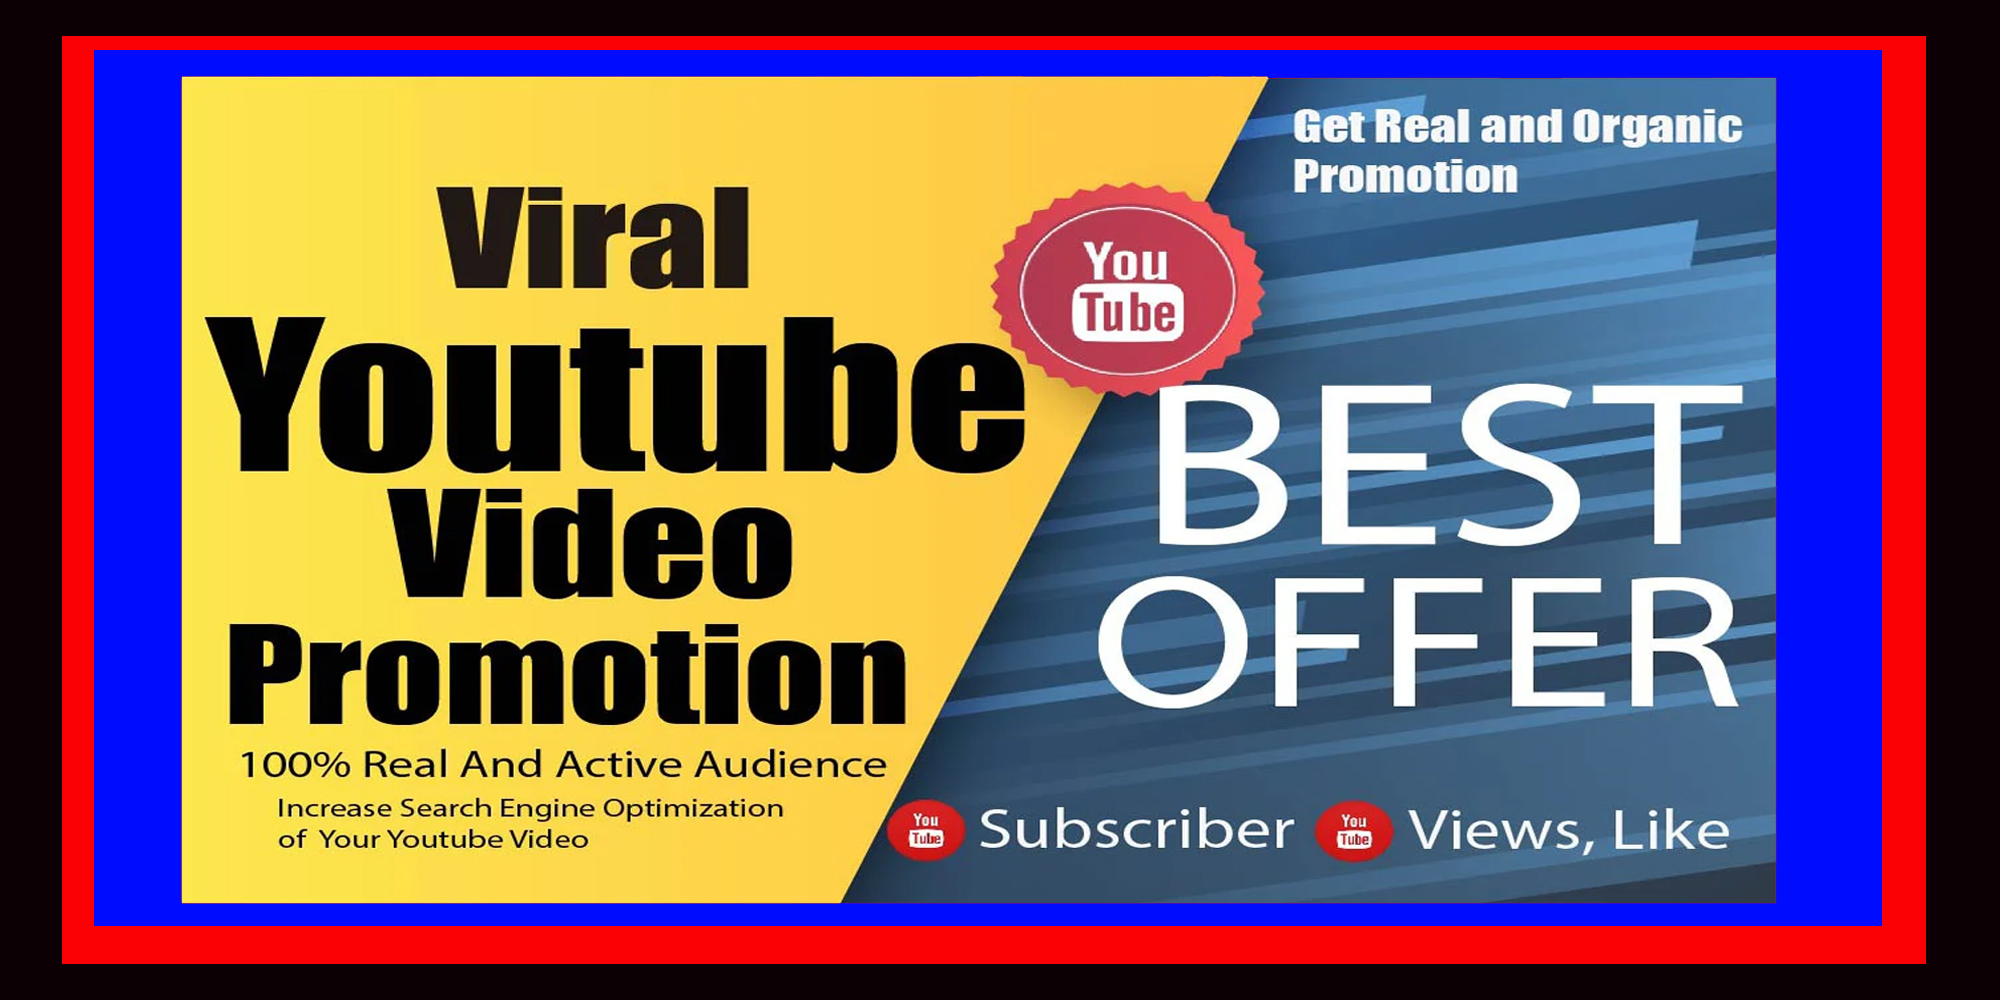 Real YouTube Video Promotion Via Adwords Marketing with Social Media Ranking